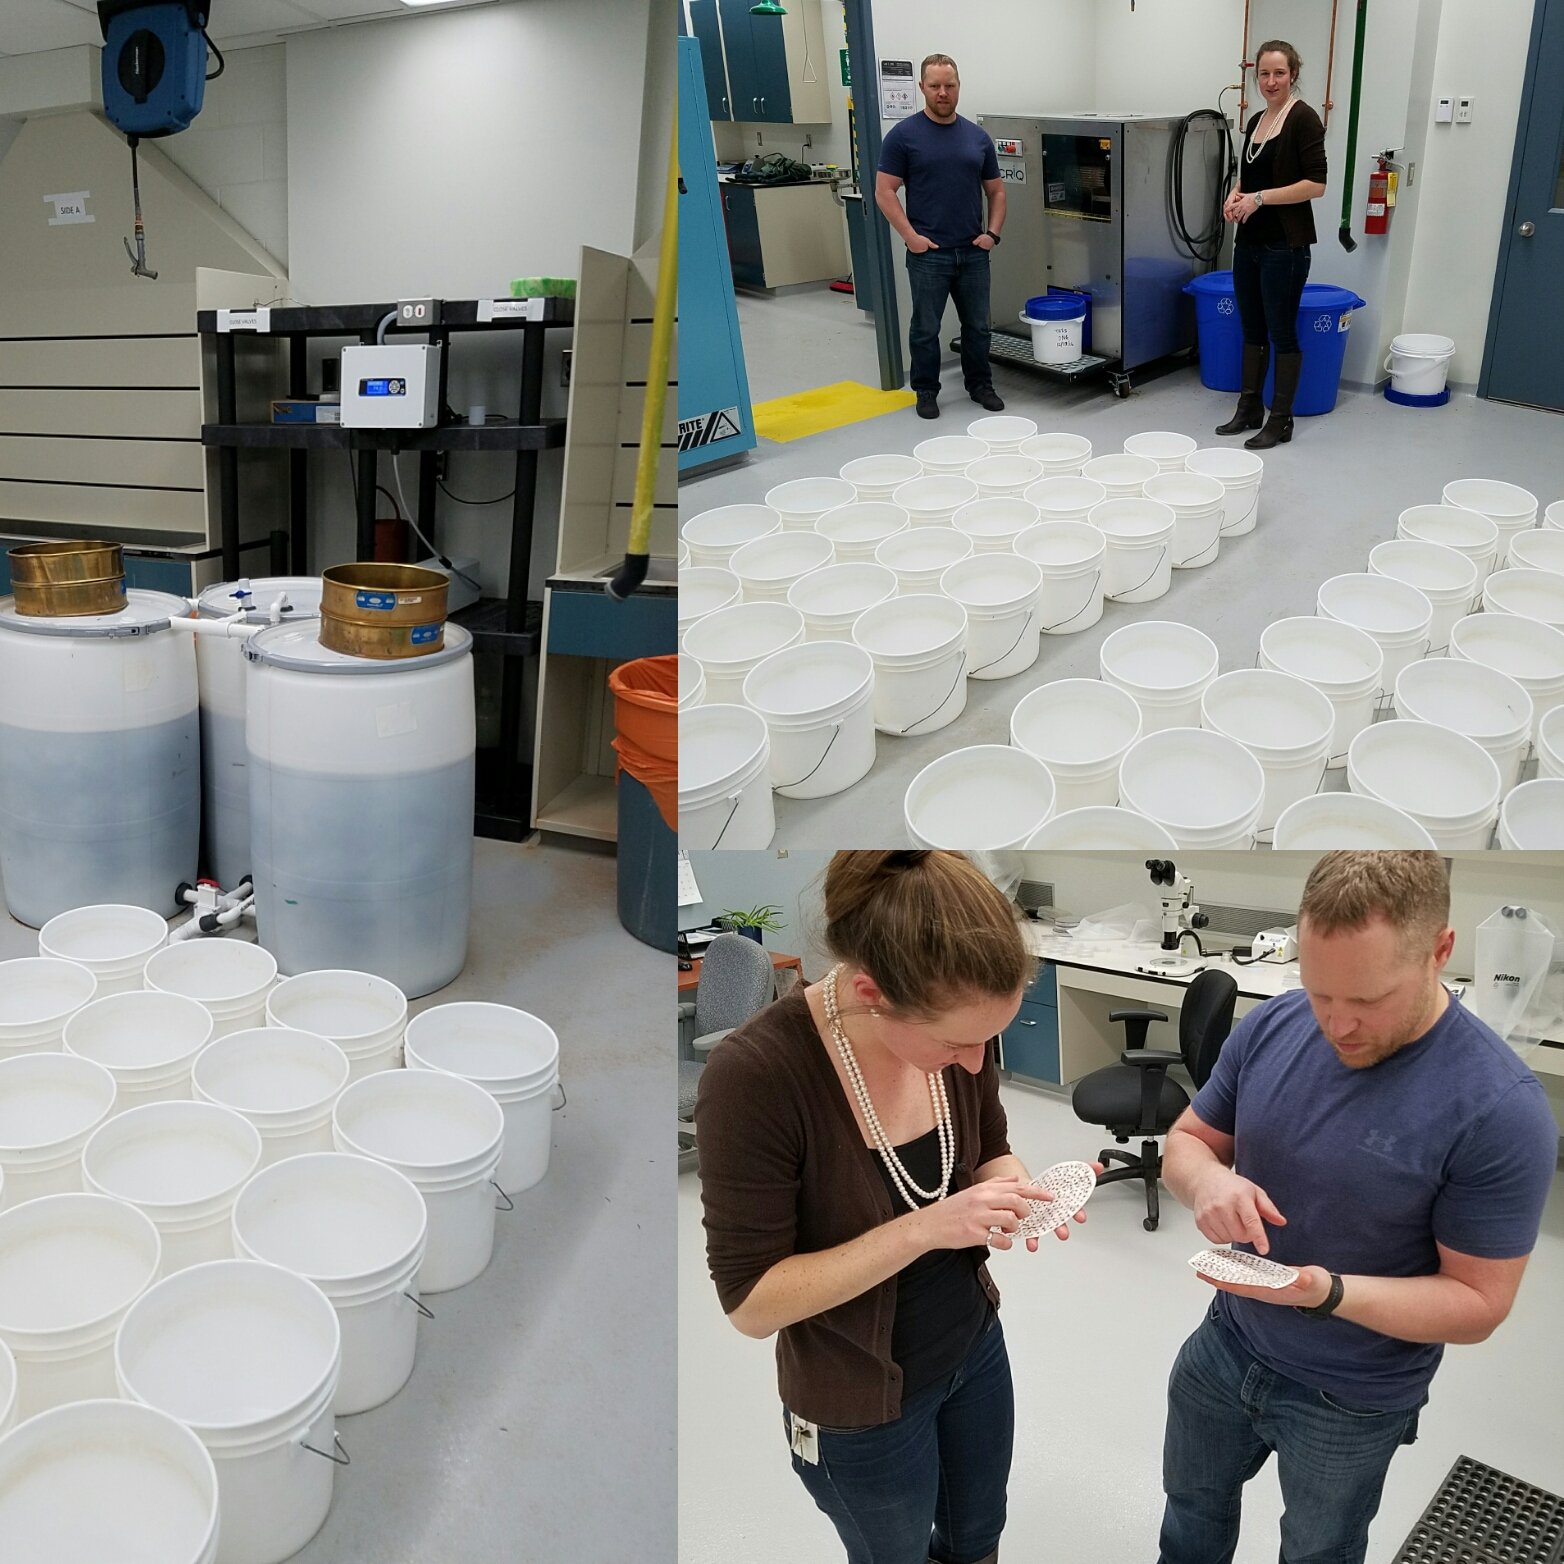 Photos of the spruce budworm L2 analysis process featuring Rob Johns and Emily Owens of the Canadian Forest Service.